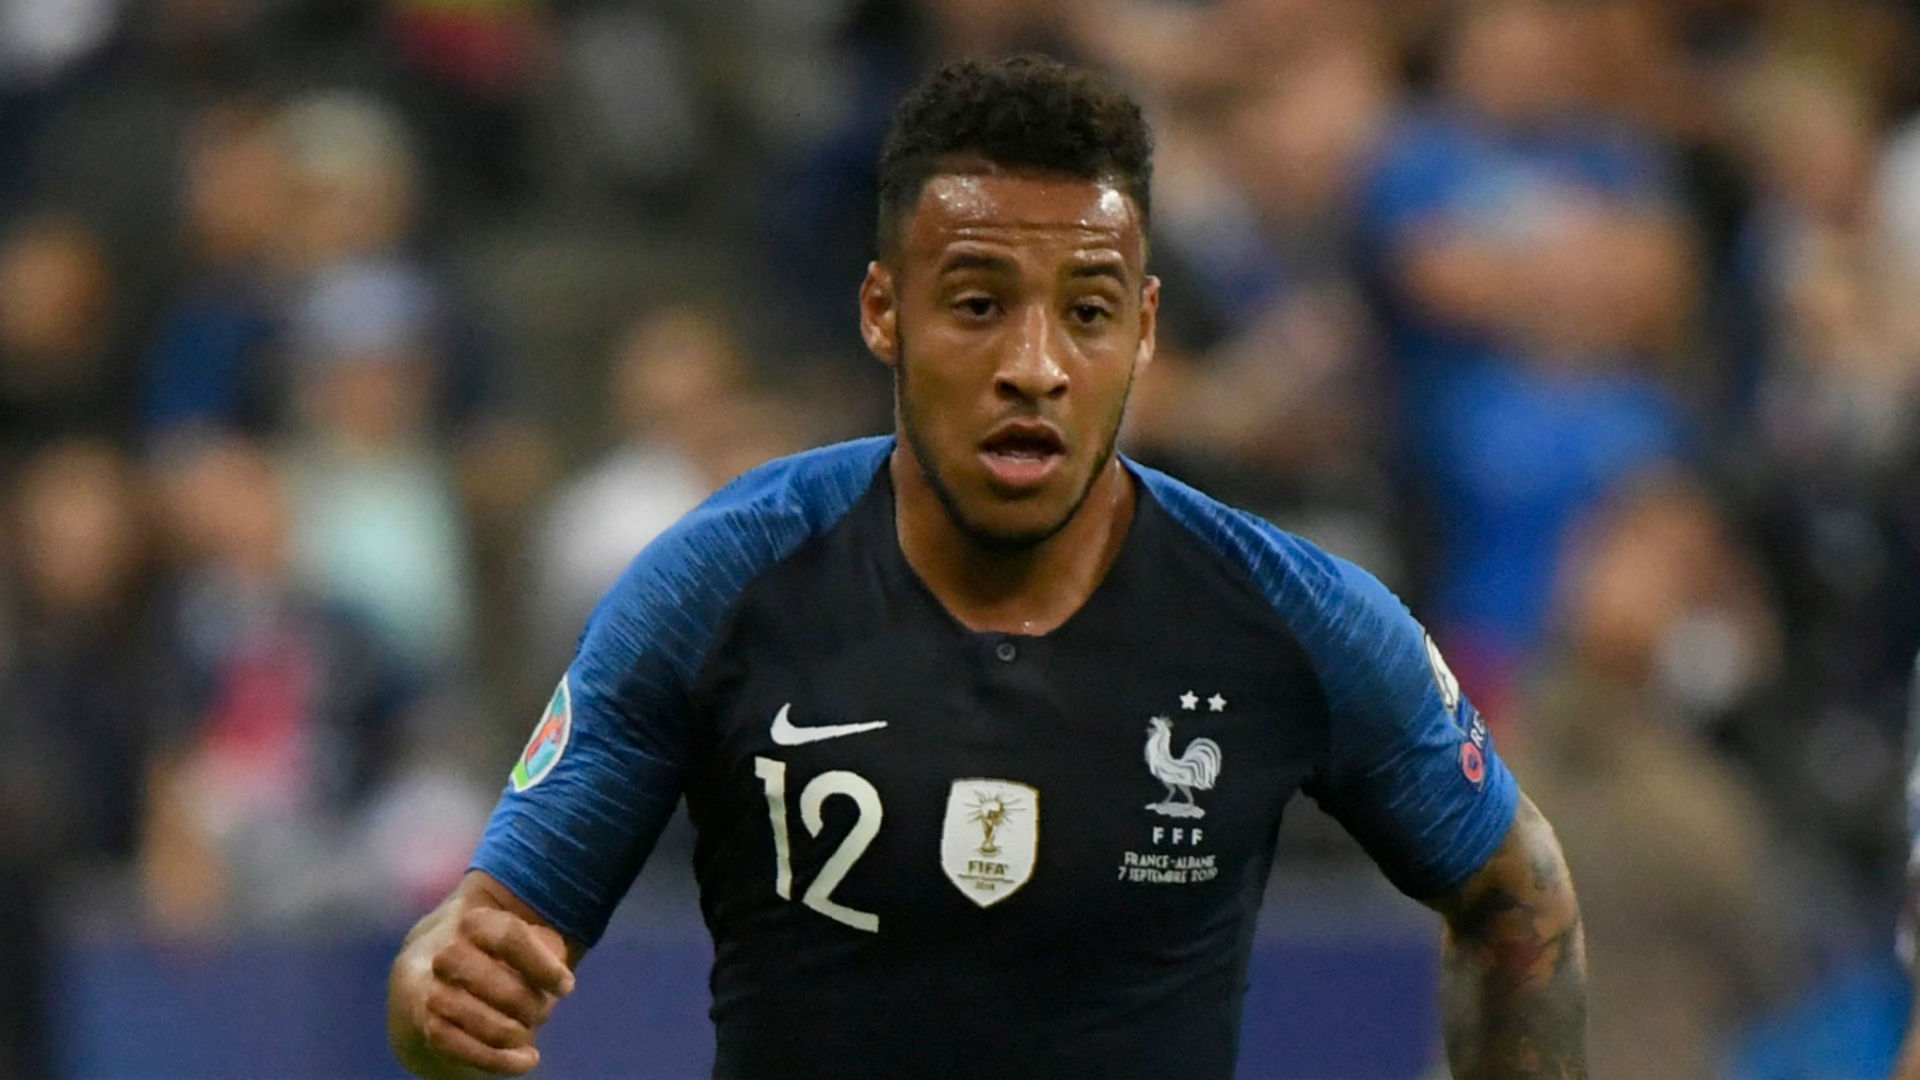 'It hardened me' - Tolisso says injury led to mental toughness after France return